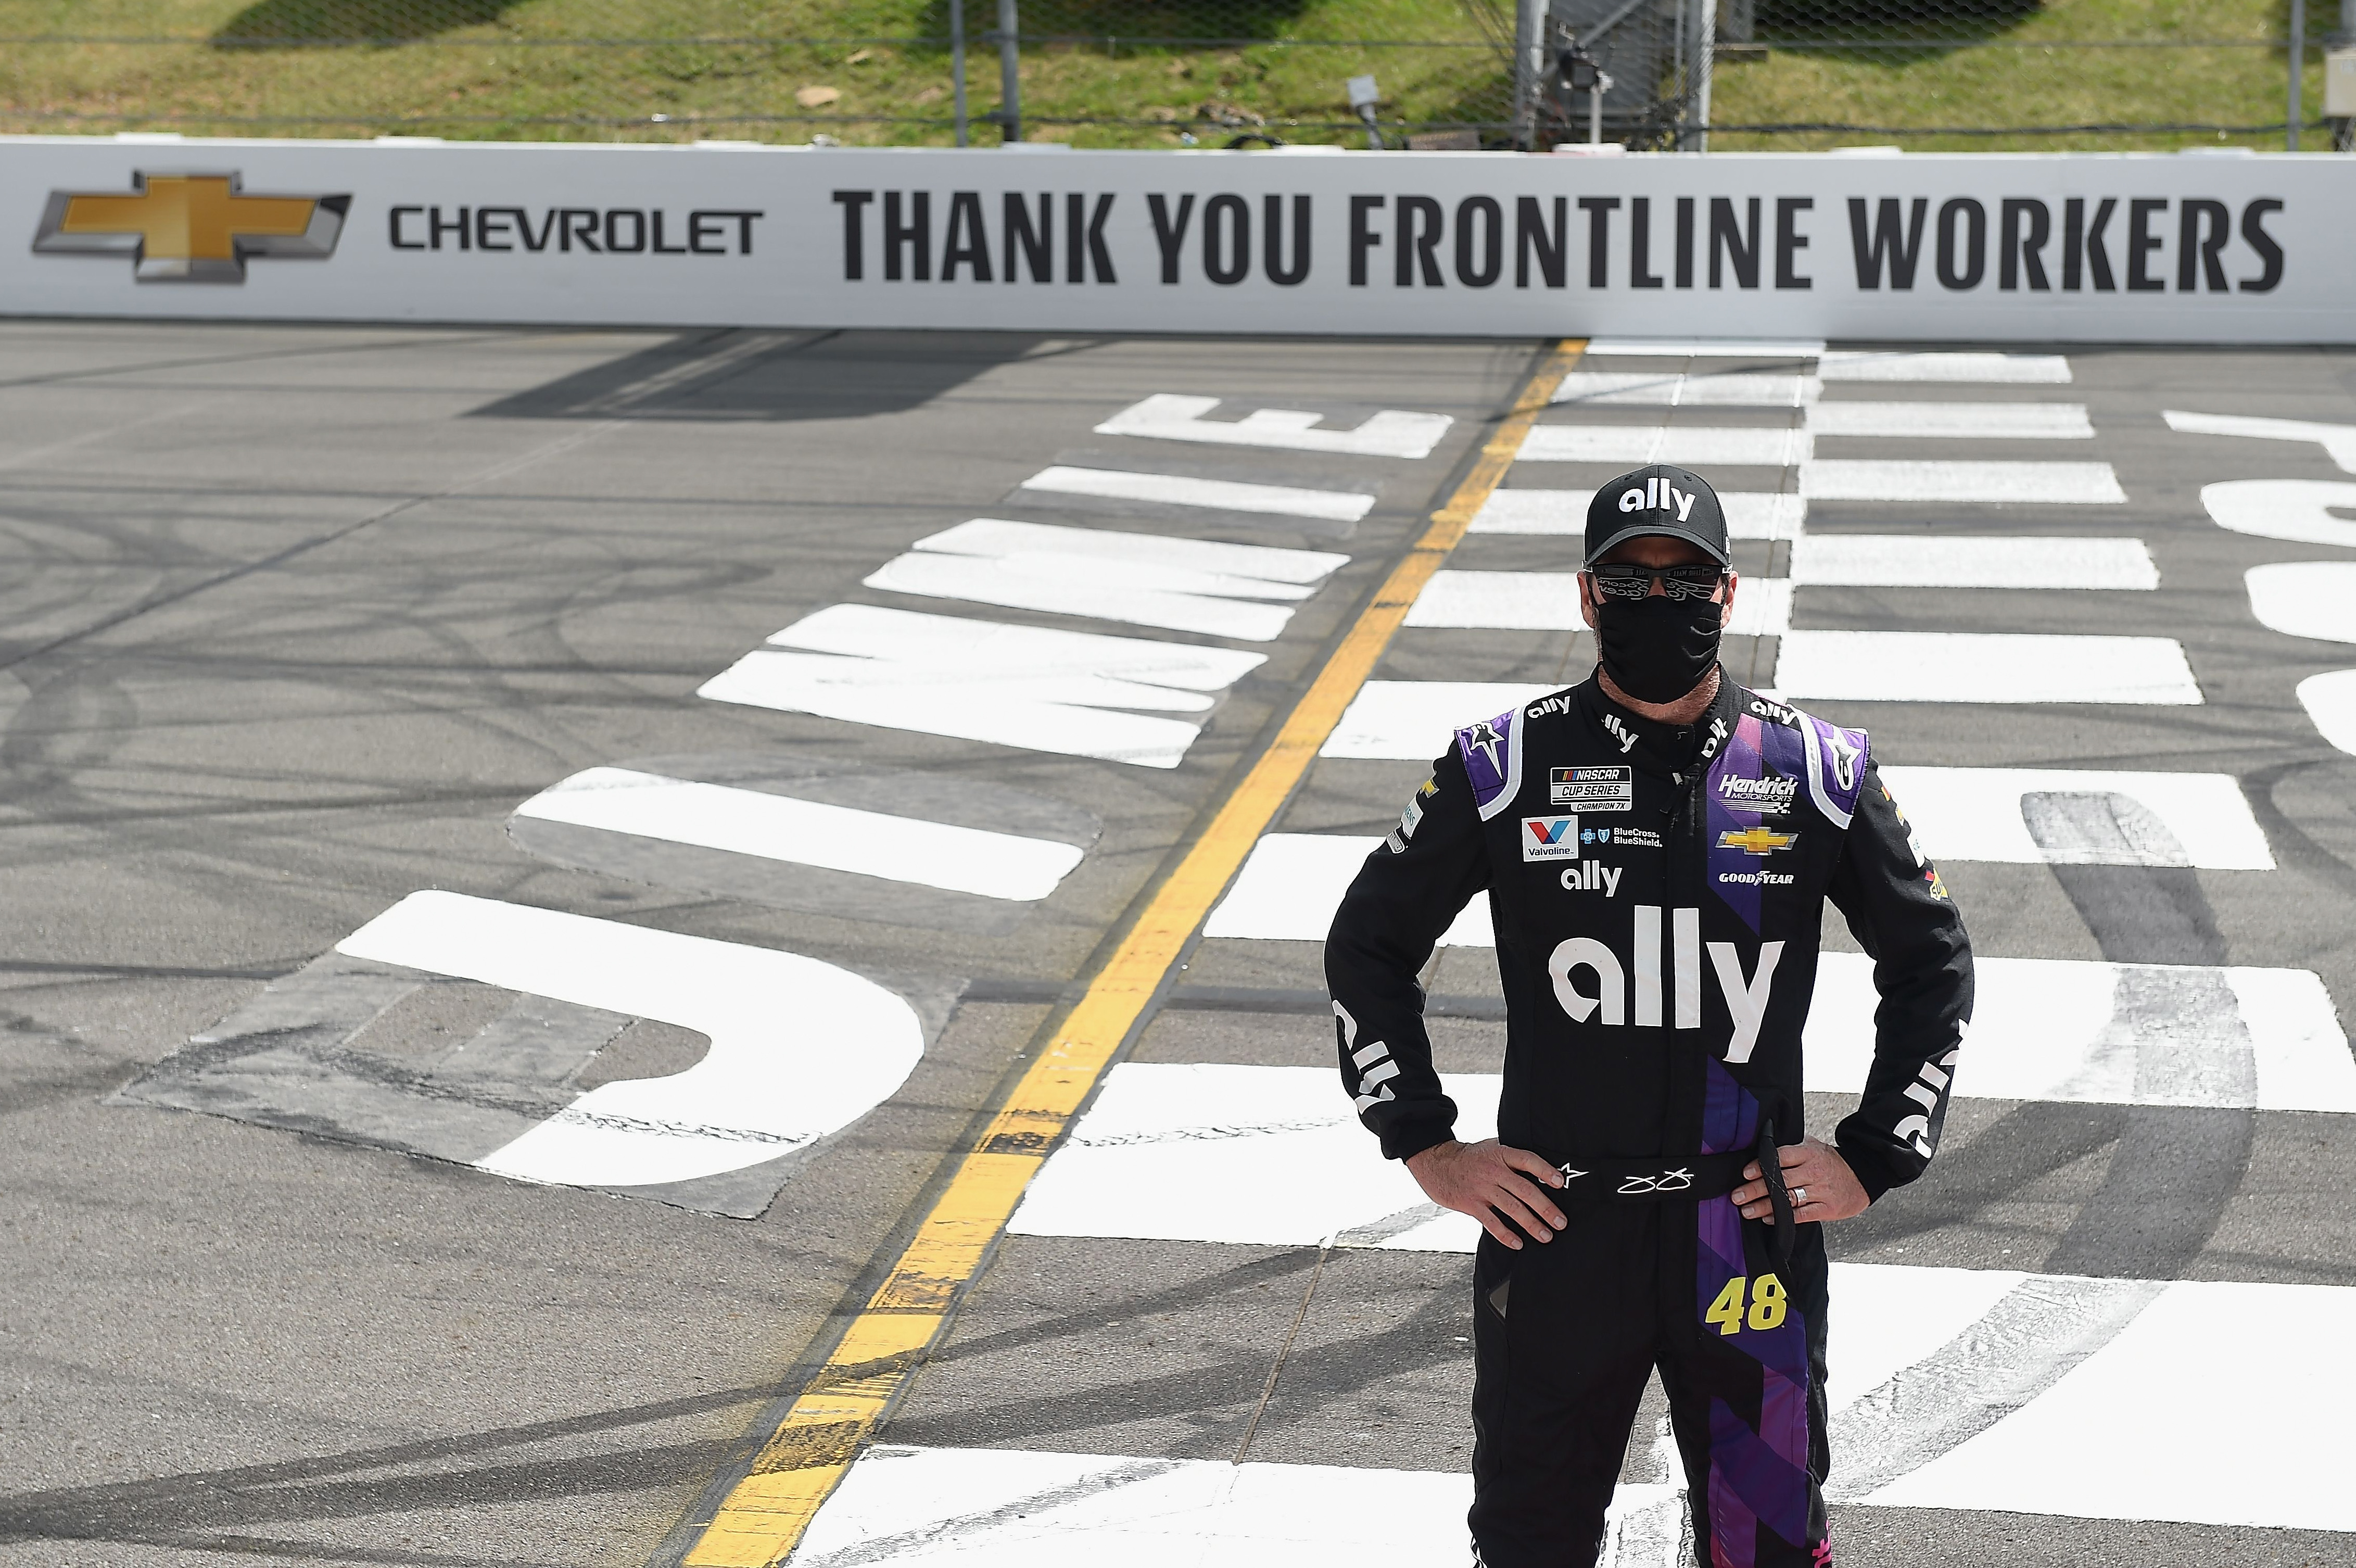 Ally Chevrolet driver Jimmie Johnson poses on the Start/Finish line to show support for front line workers prior to the NASCAR Cup Series Pocono 350